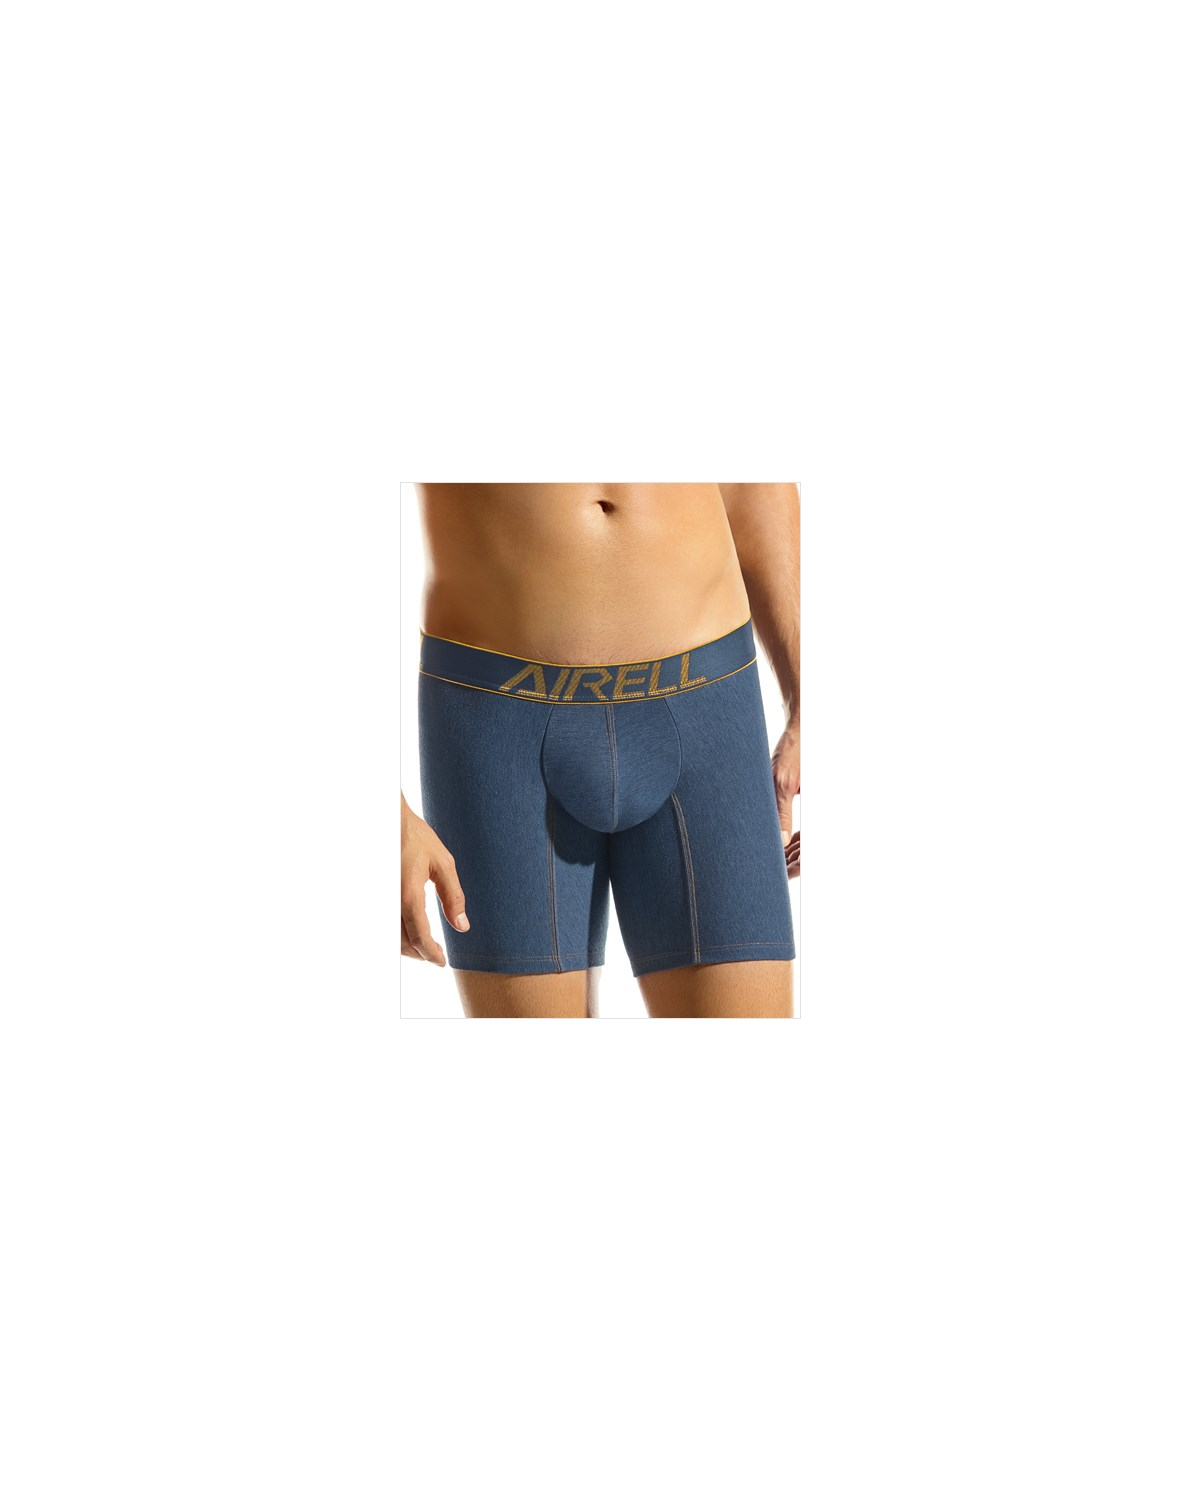 leo high performance cotton boxer brief-546- Blue Denim-MainImage